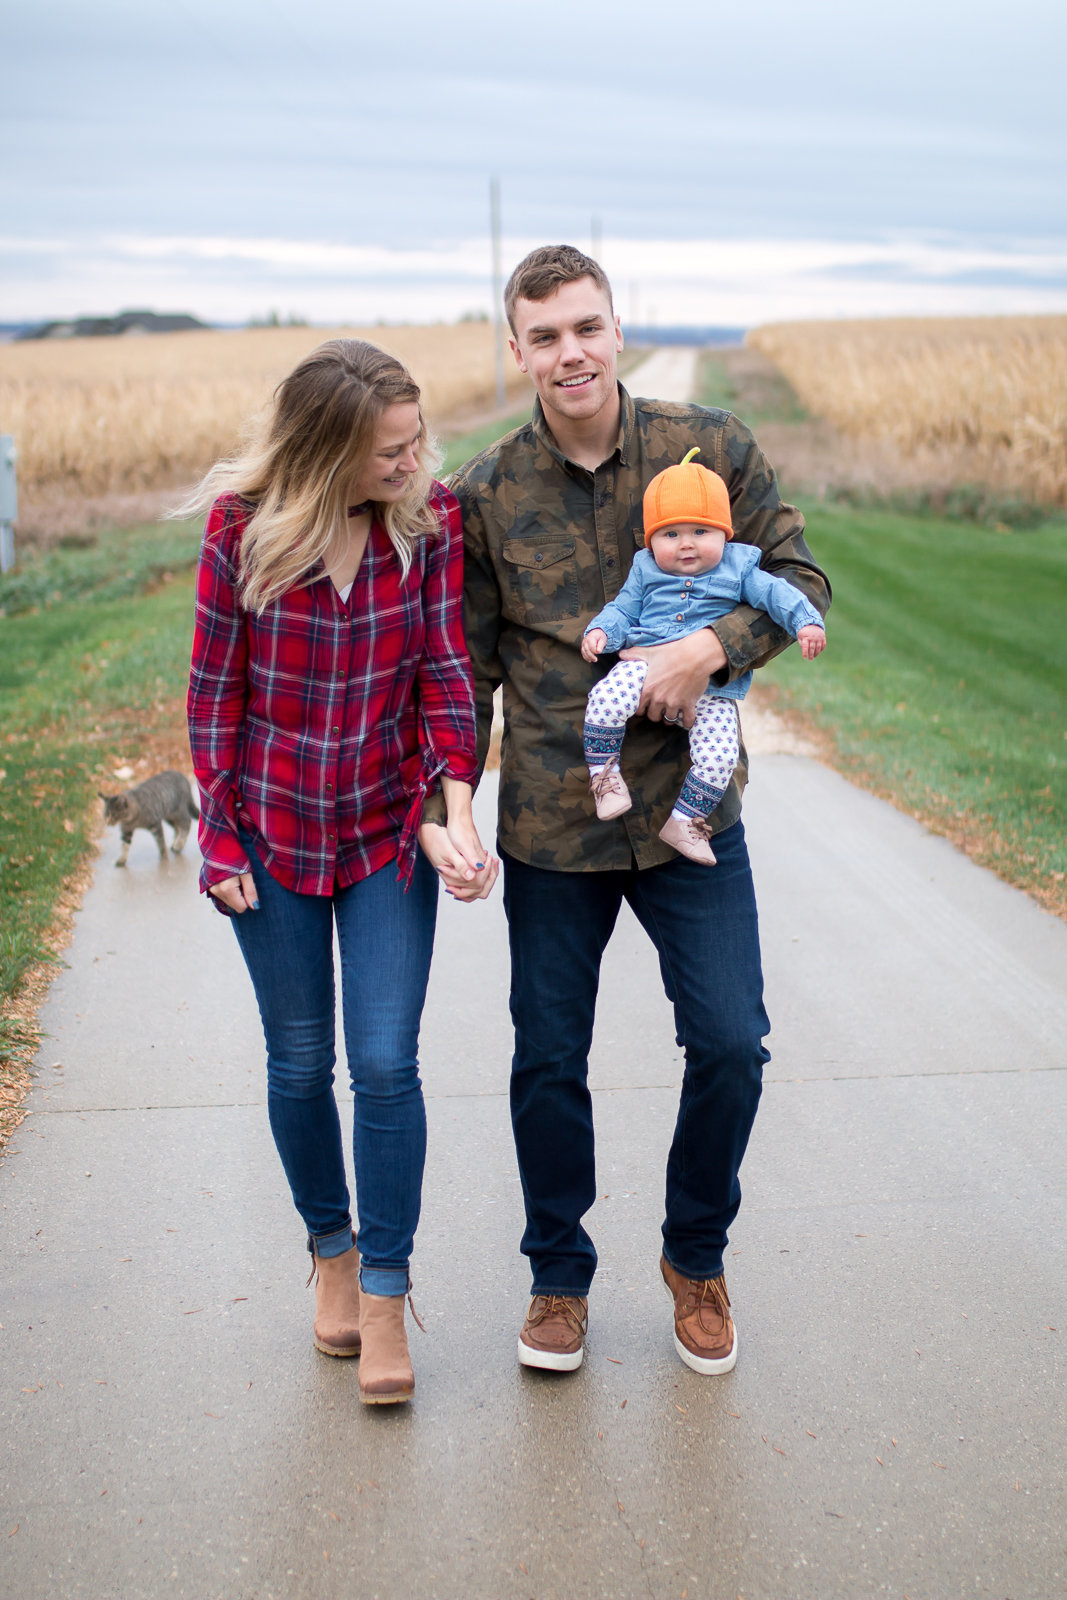 Fall family photography session with young infant